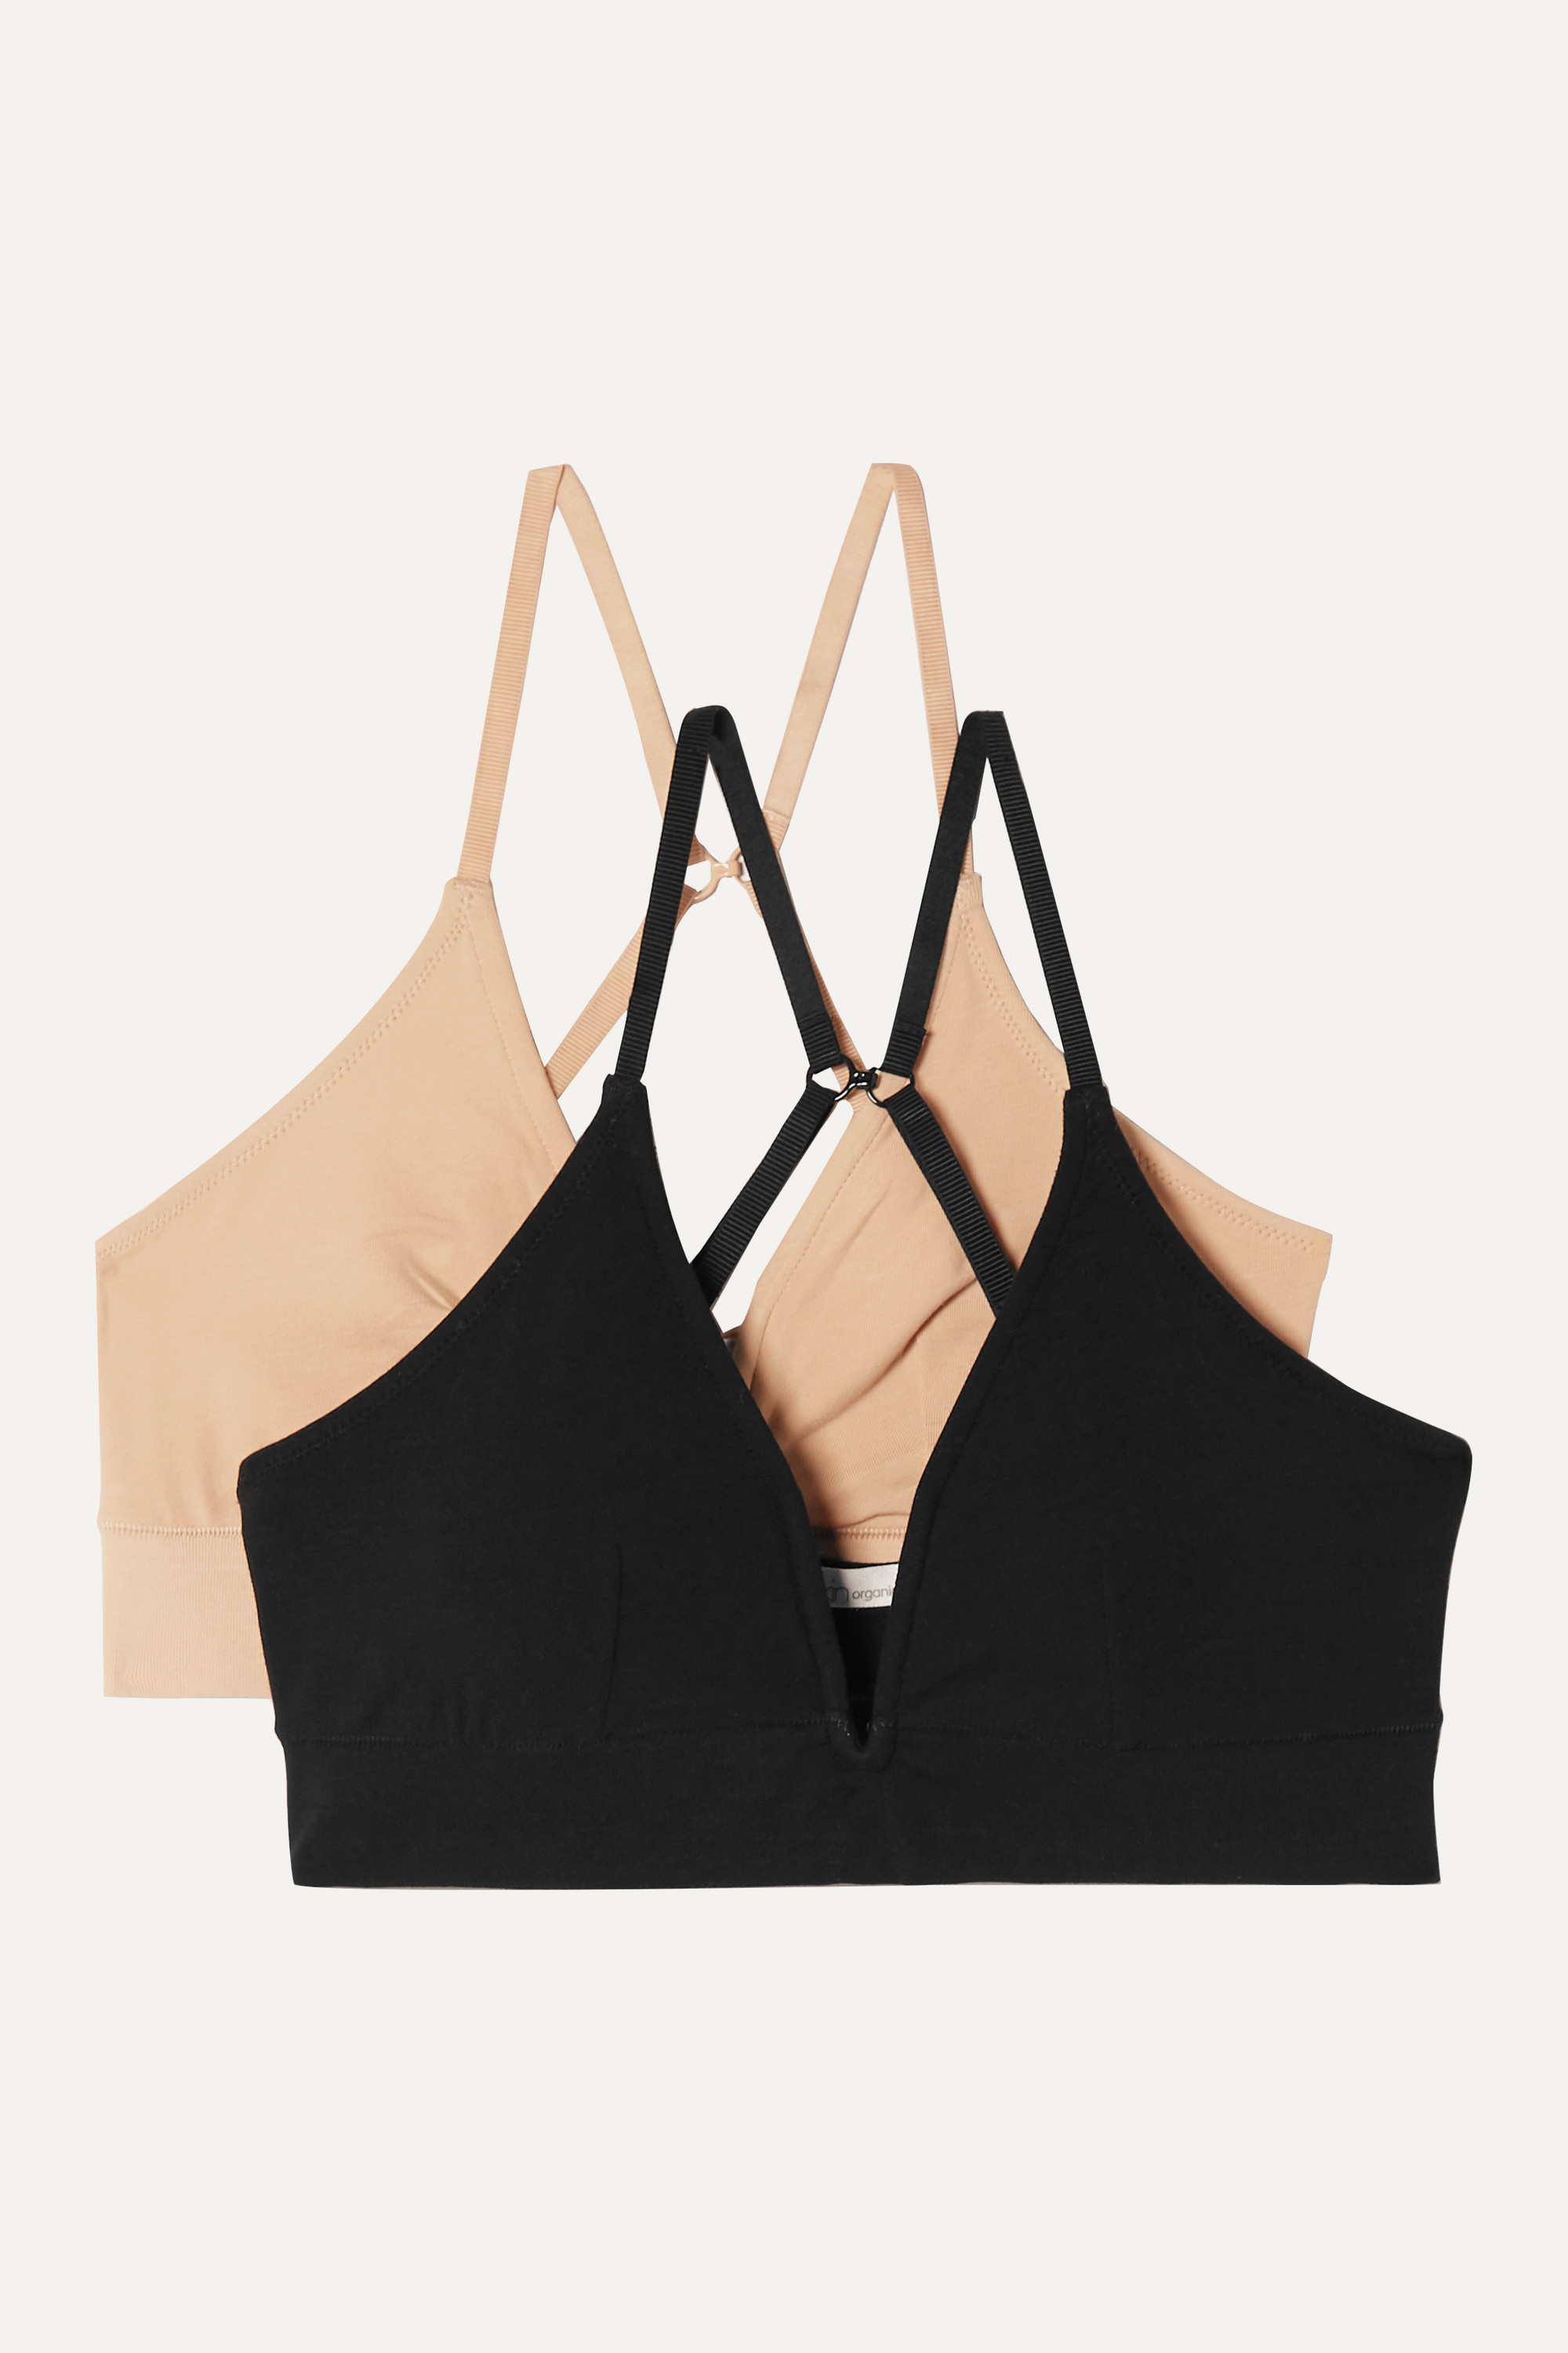 Skin Garcelle set of two organic Pima cotton-blend jersey soft-cup bras